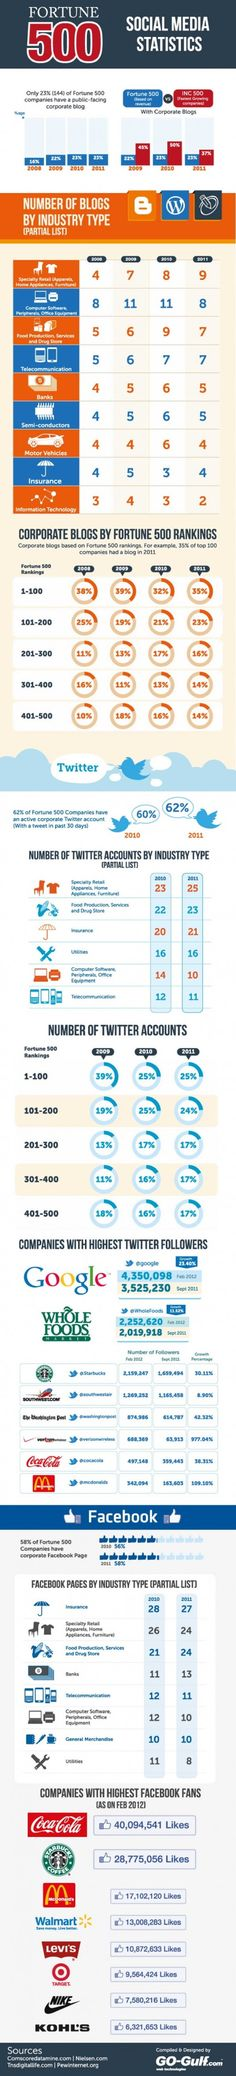 Infographic on how the fortune 500 use social media. Quite interesting facts, mainly on their use of facebook & twitter.